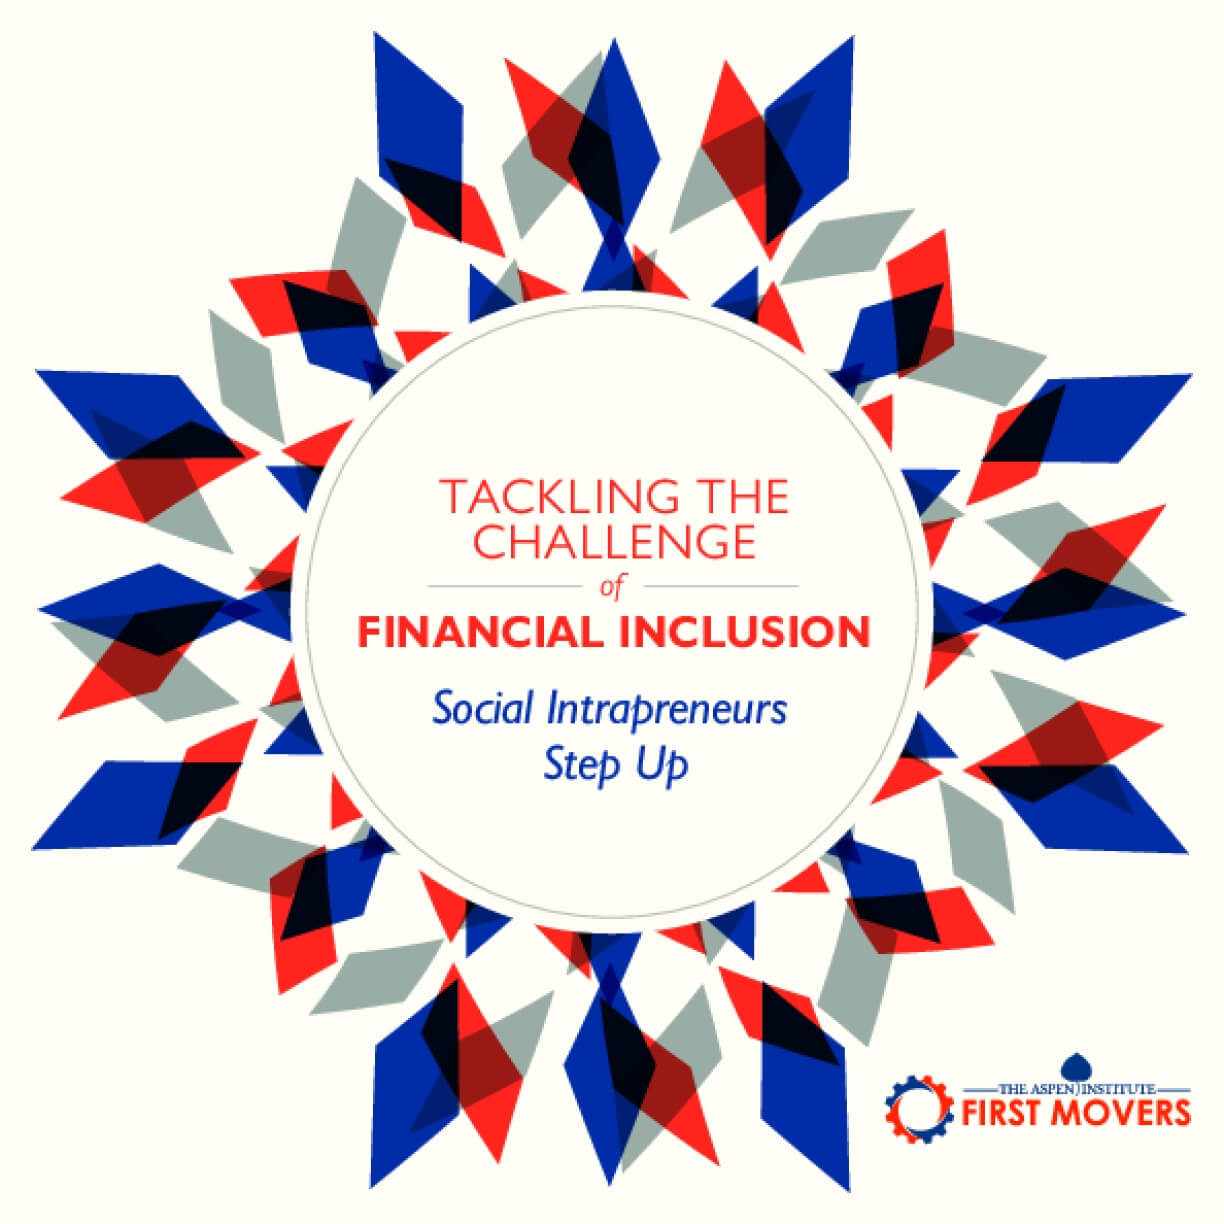 Tackling the Challenge of Financial Inclusion: Social Intrapreneurs Step Up